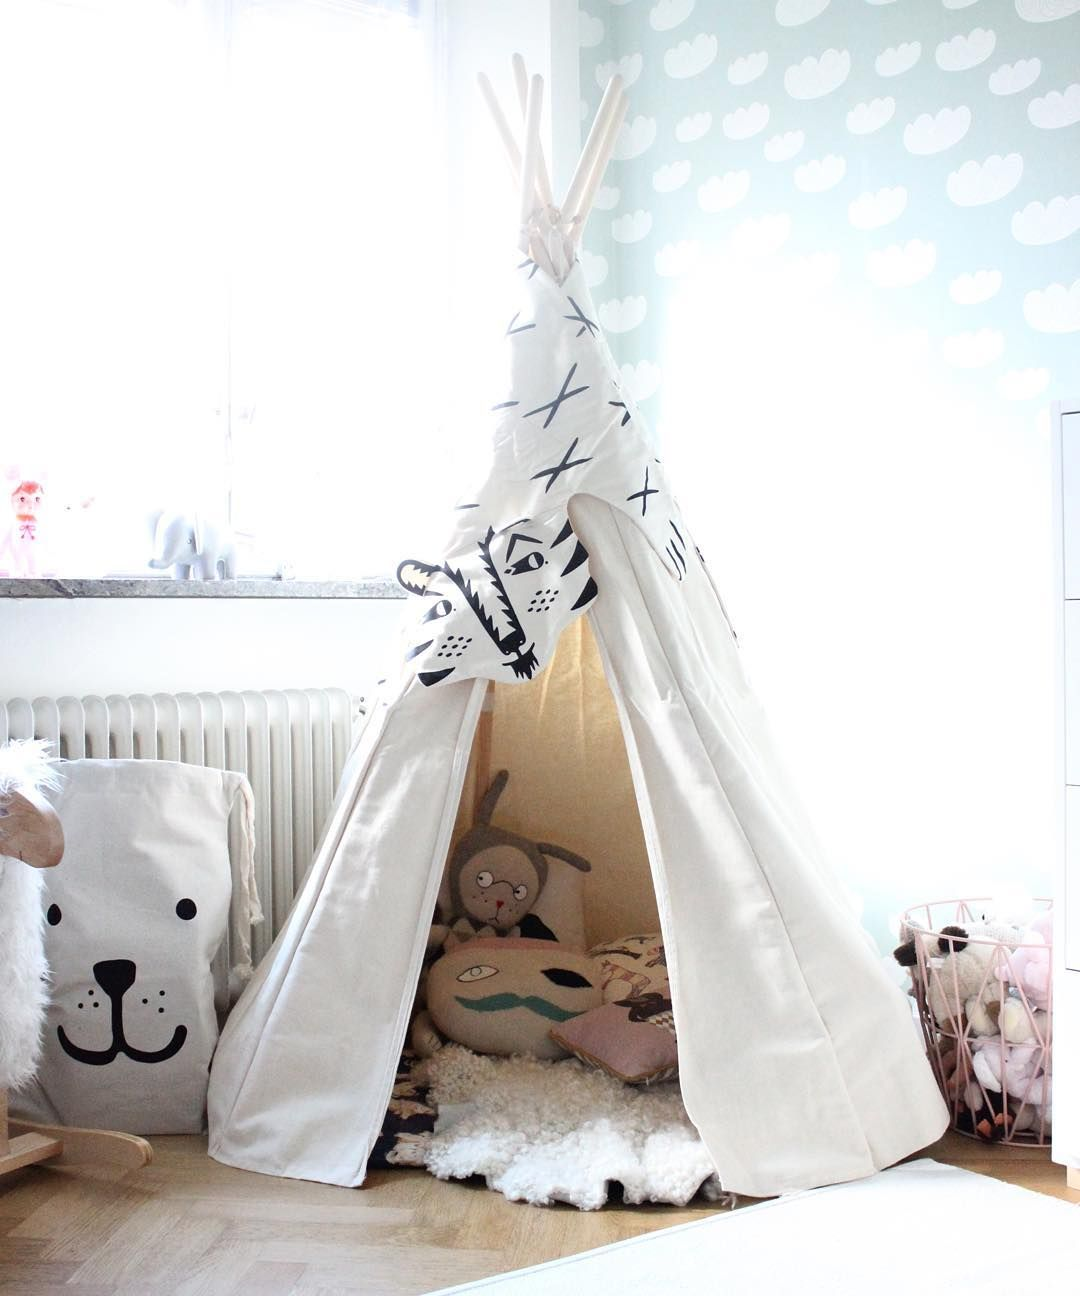 A new Tipi Tent in the kidsroom & A new Tipi Tent in the kidsroom | Someday | Pinterest | Kidsroom ...